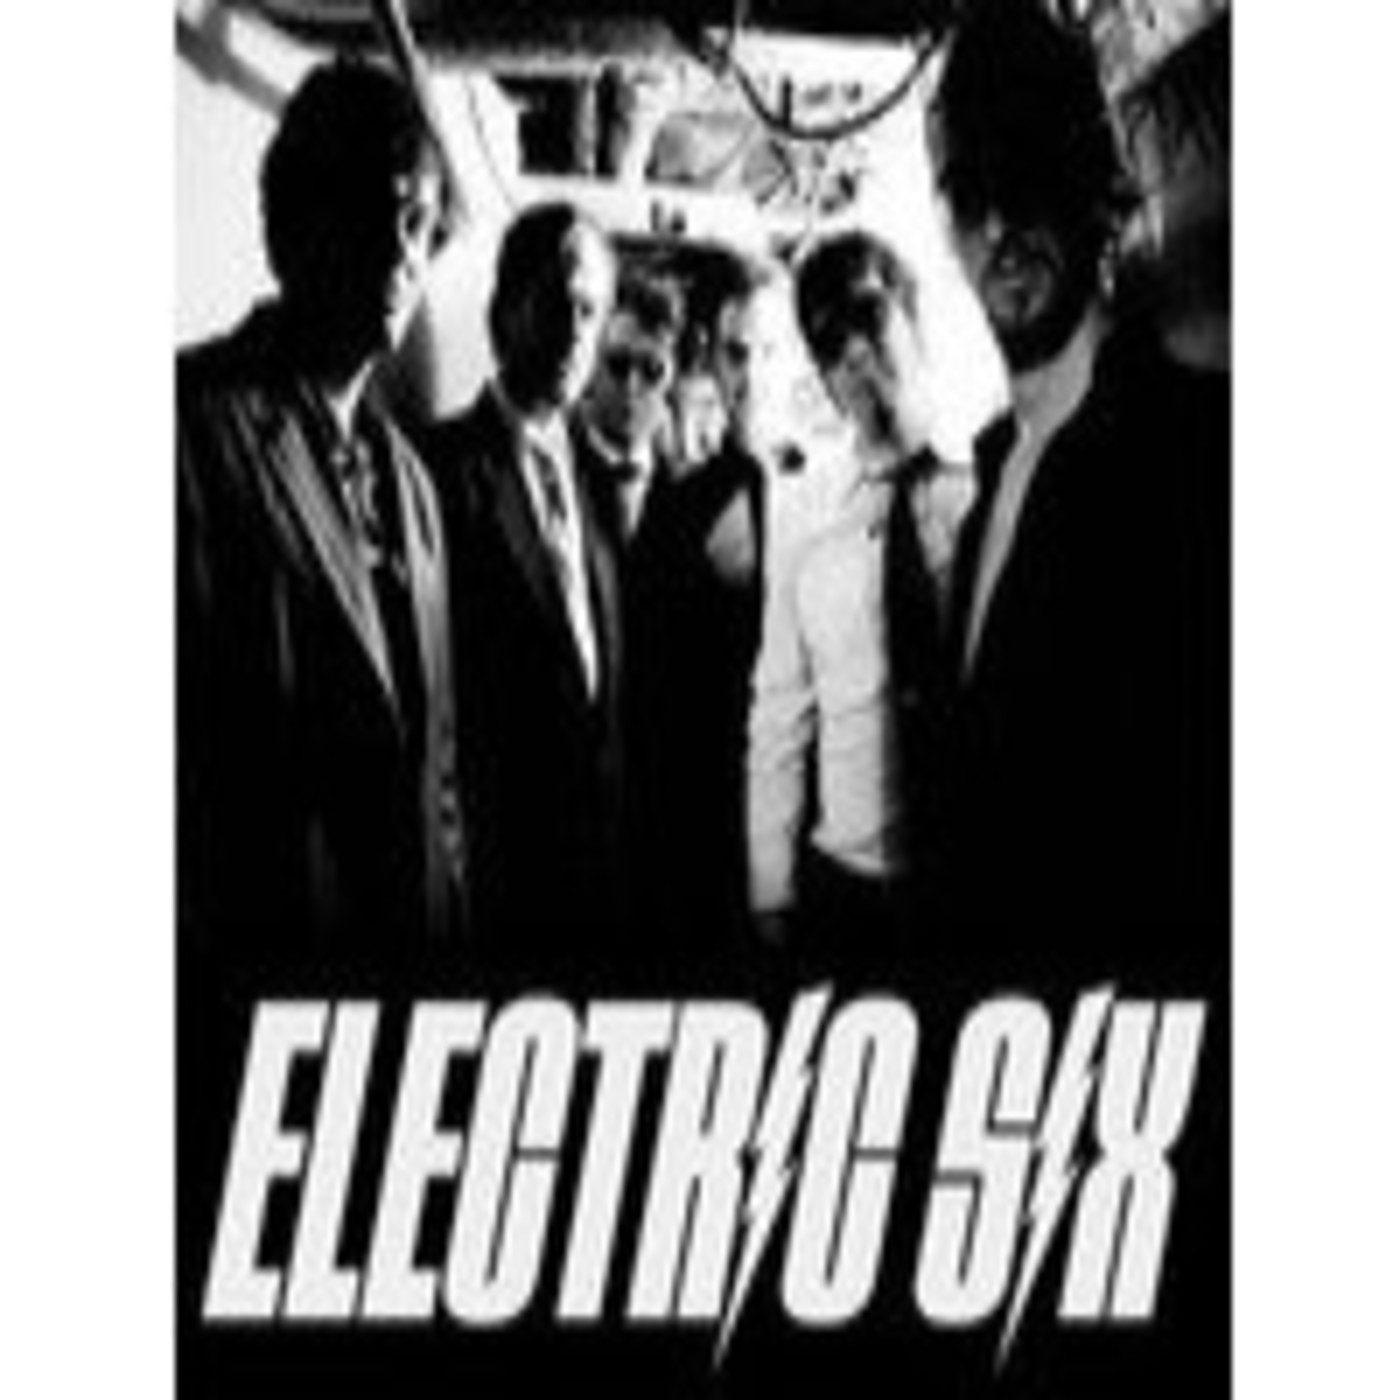 Electric Six In Podcast Http Desdelasraices Ivoox Mp3 28 12 A Las 02 29 14 04 59 1673322